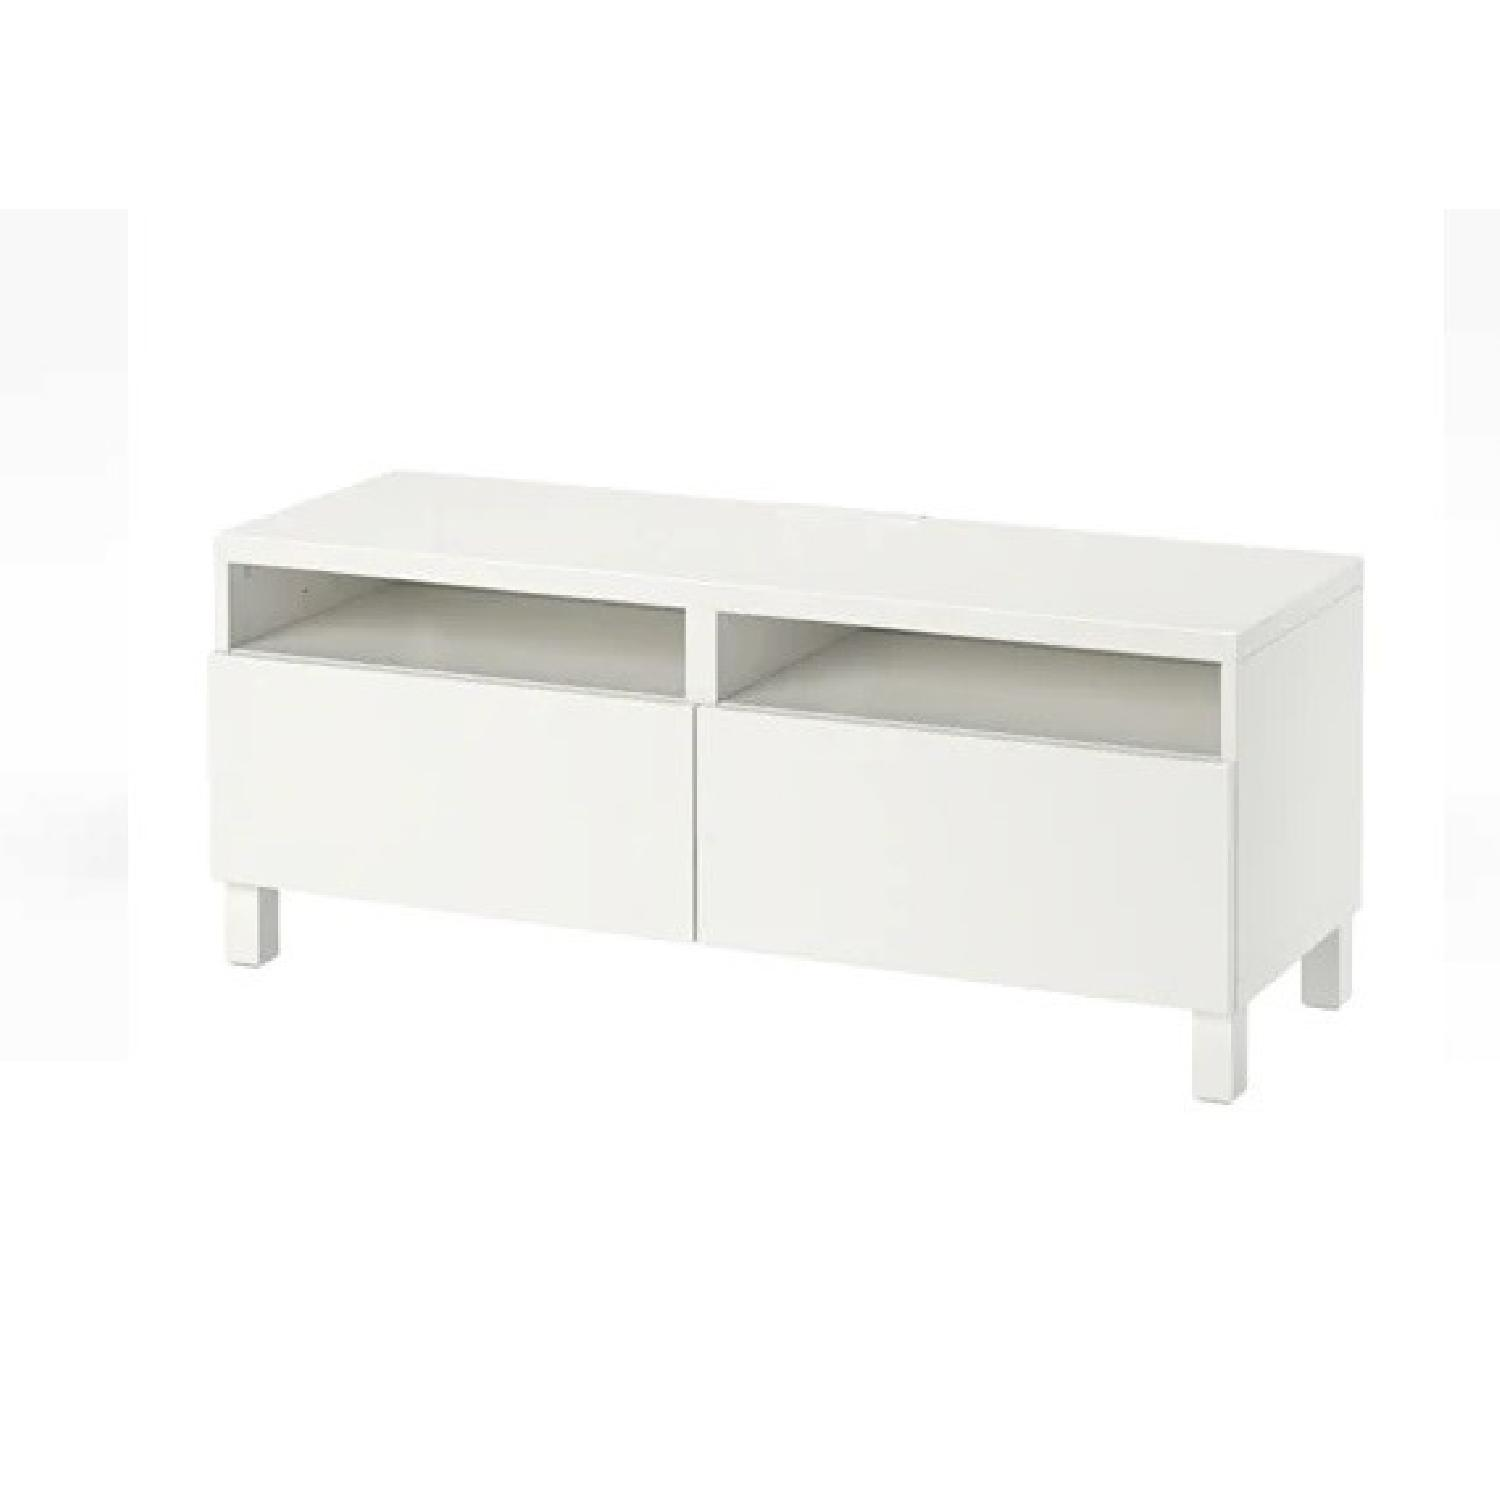 Ikea Besta TV Unit w/ Drawers